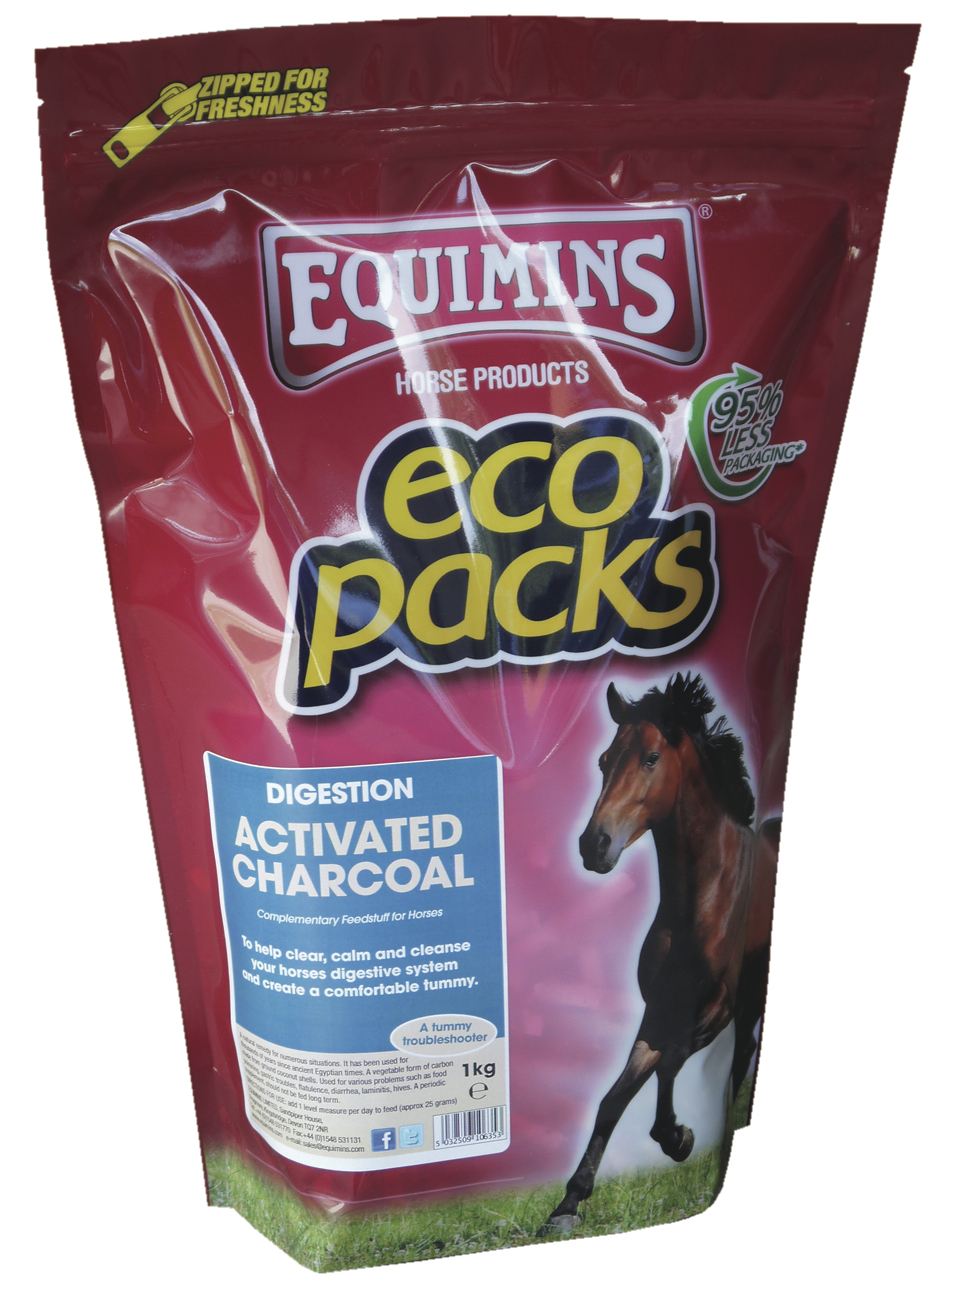 activated charcoal ecopack 1kg copy - Activated Charcoal is now available from Equimins